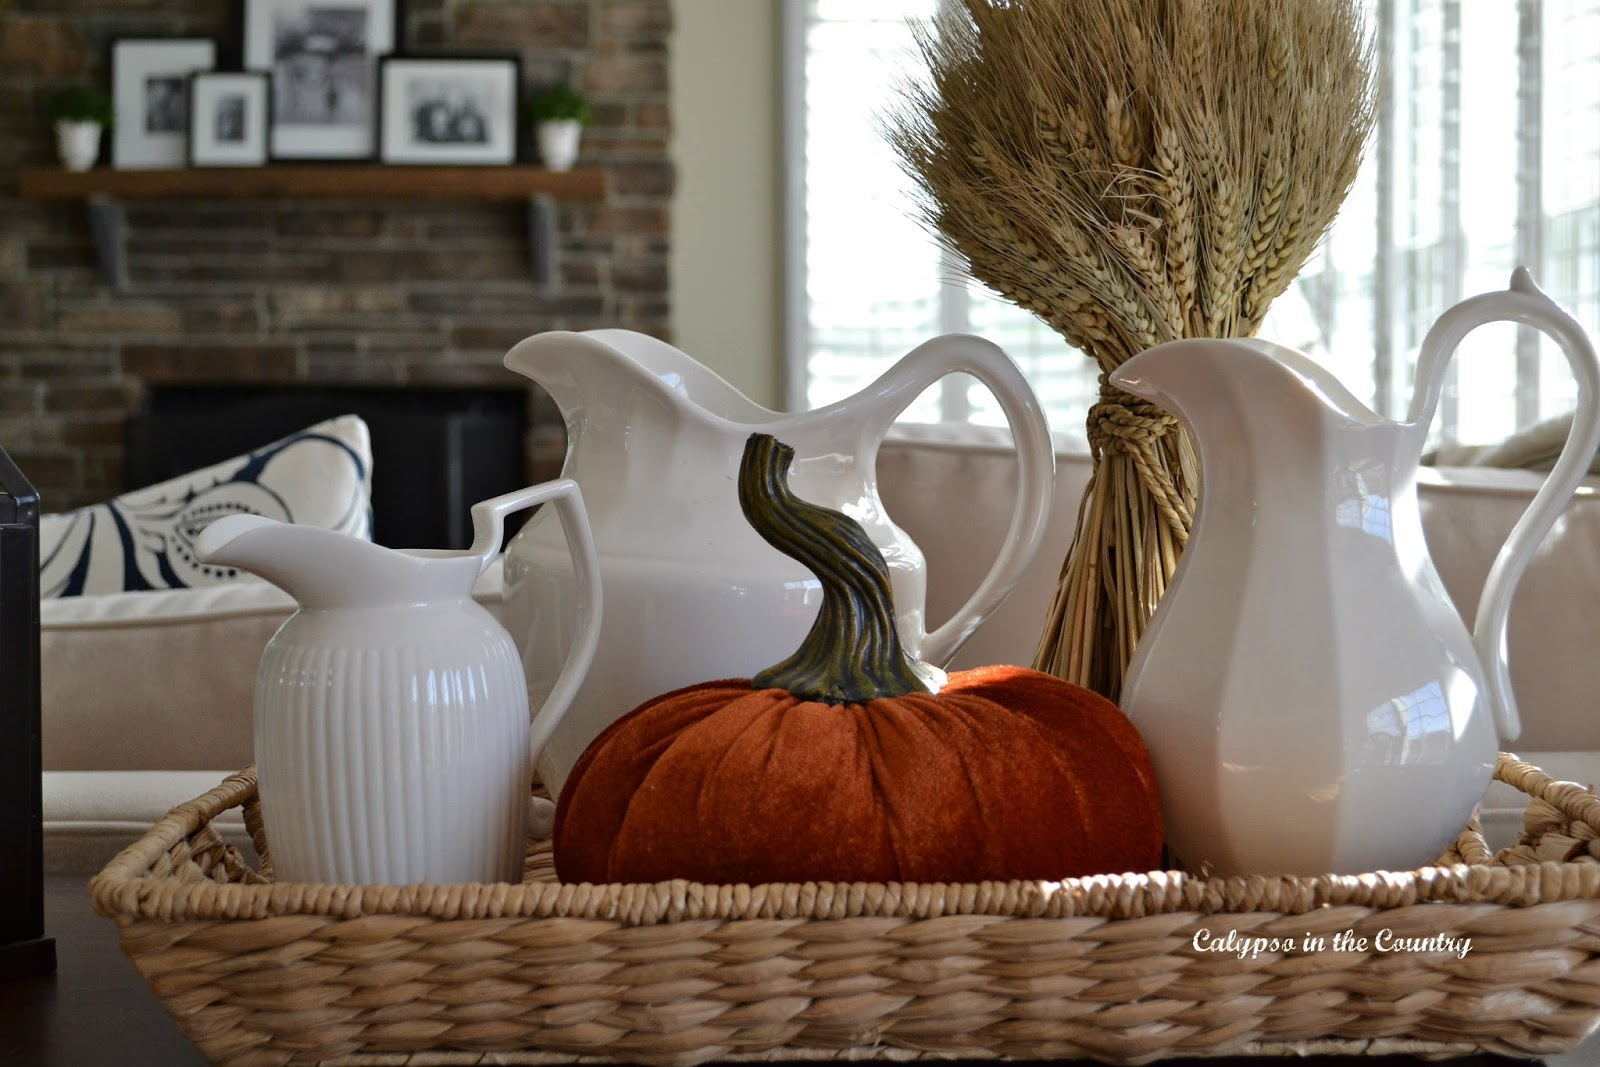 Festive Fall Vignette with White Pitchers